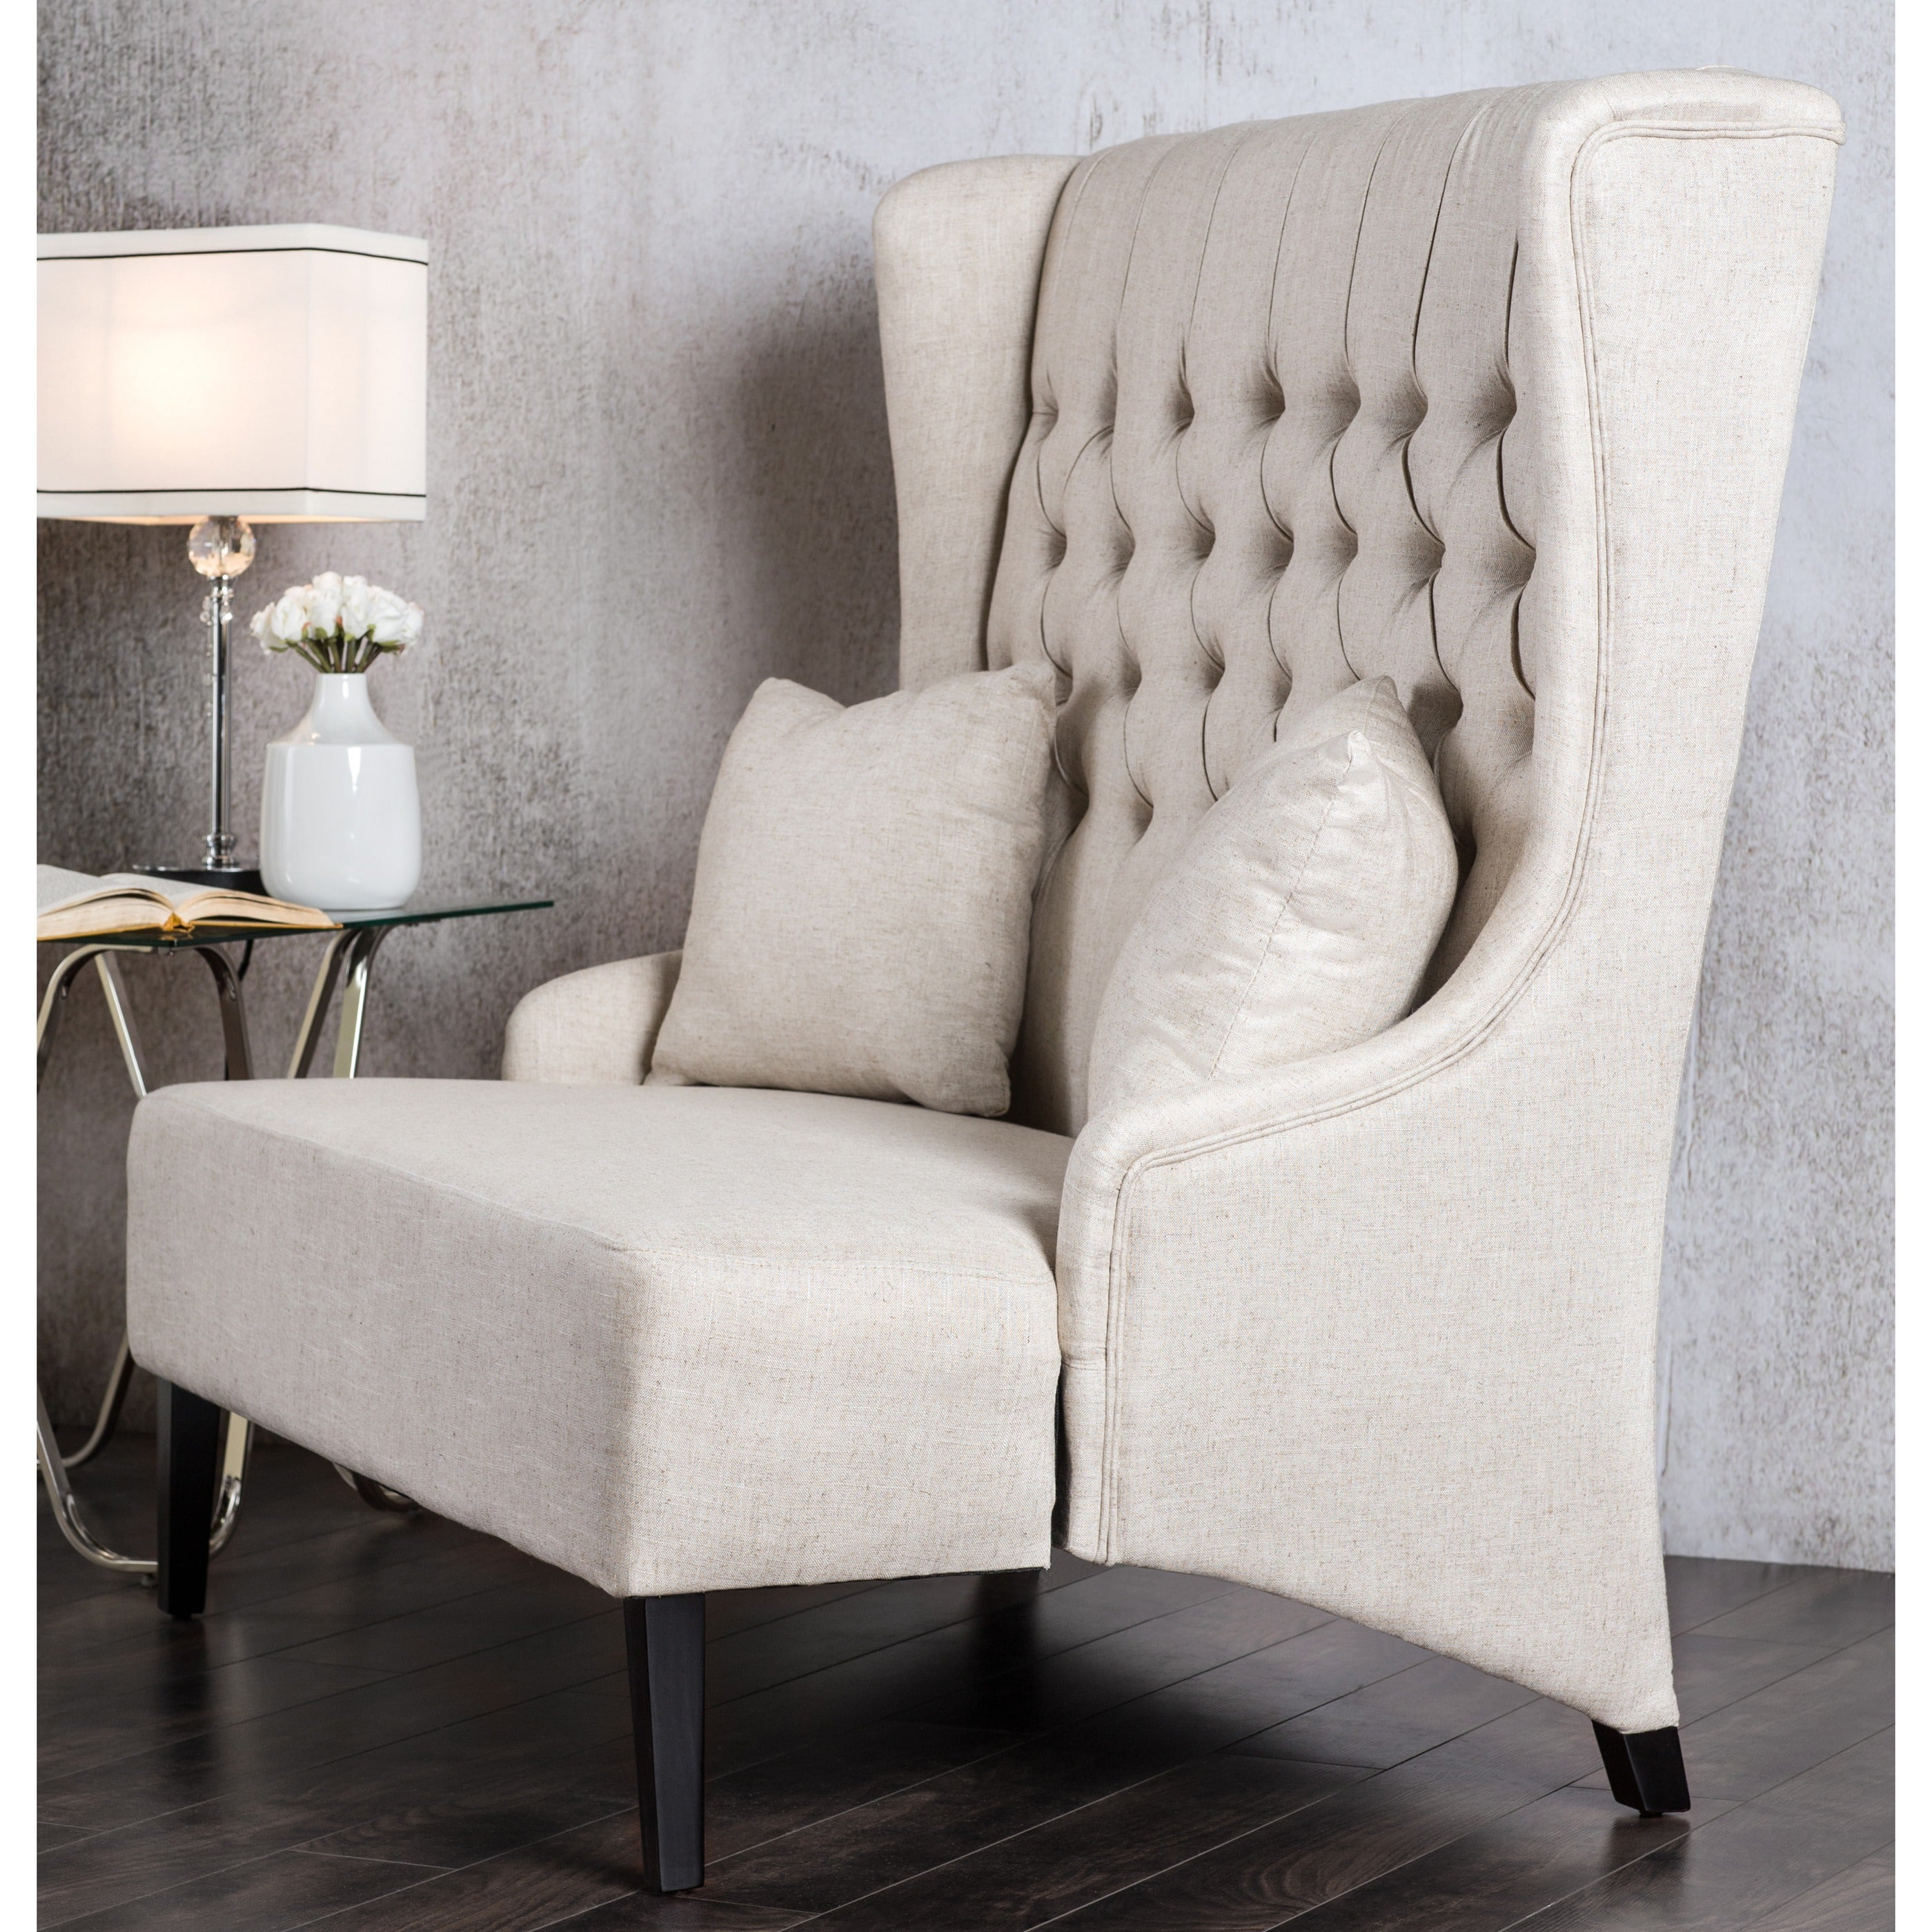 Charmant Shop Furniture Of America Chierre Romantic Tufted Wingback Loveseat Bench    On Sale   Free Shipping Today   Overstock.com   9922956